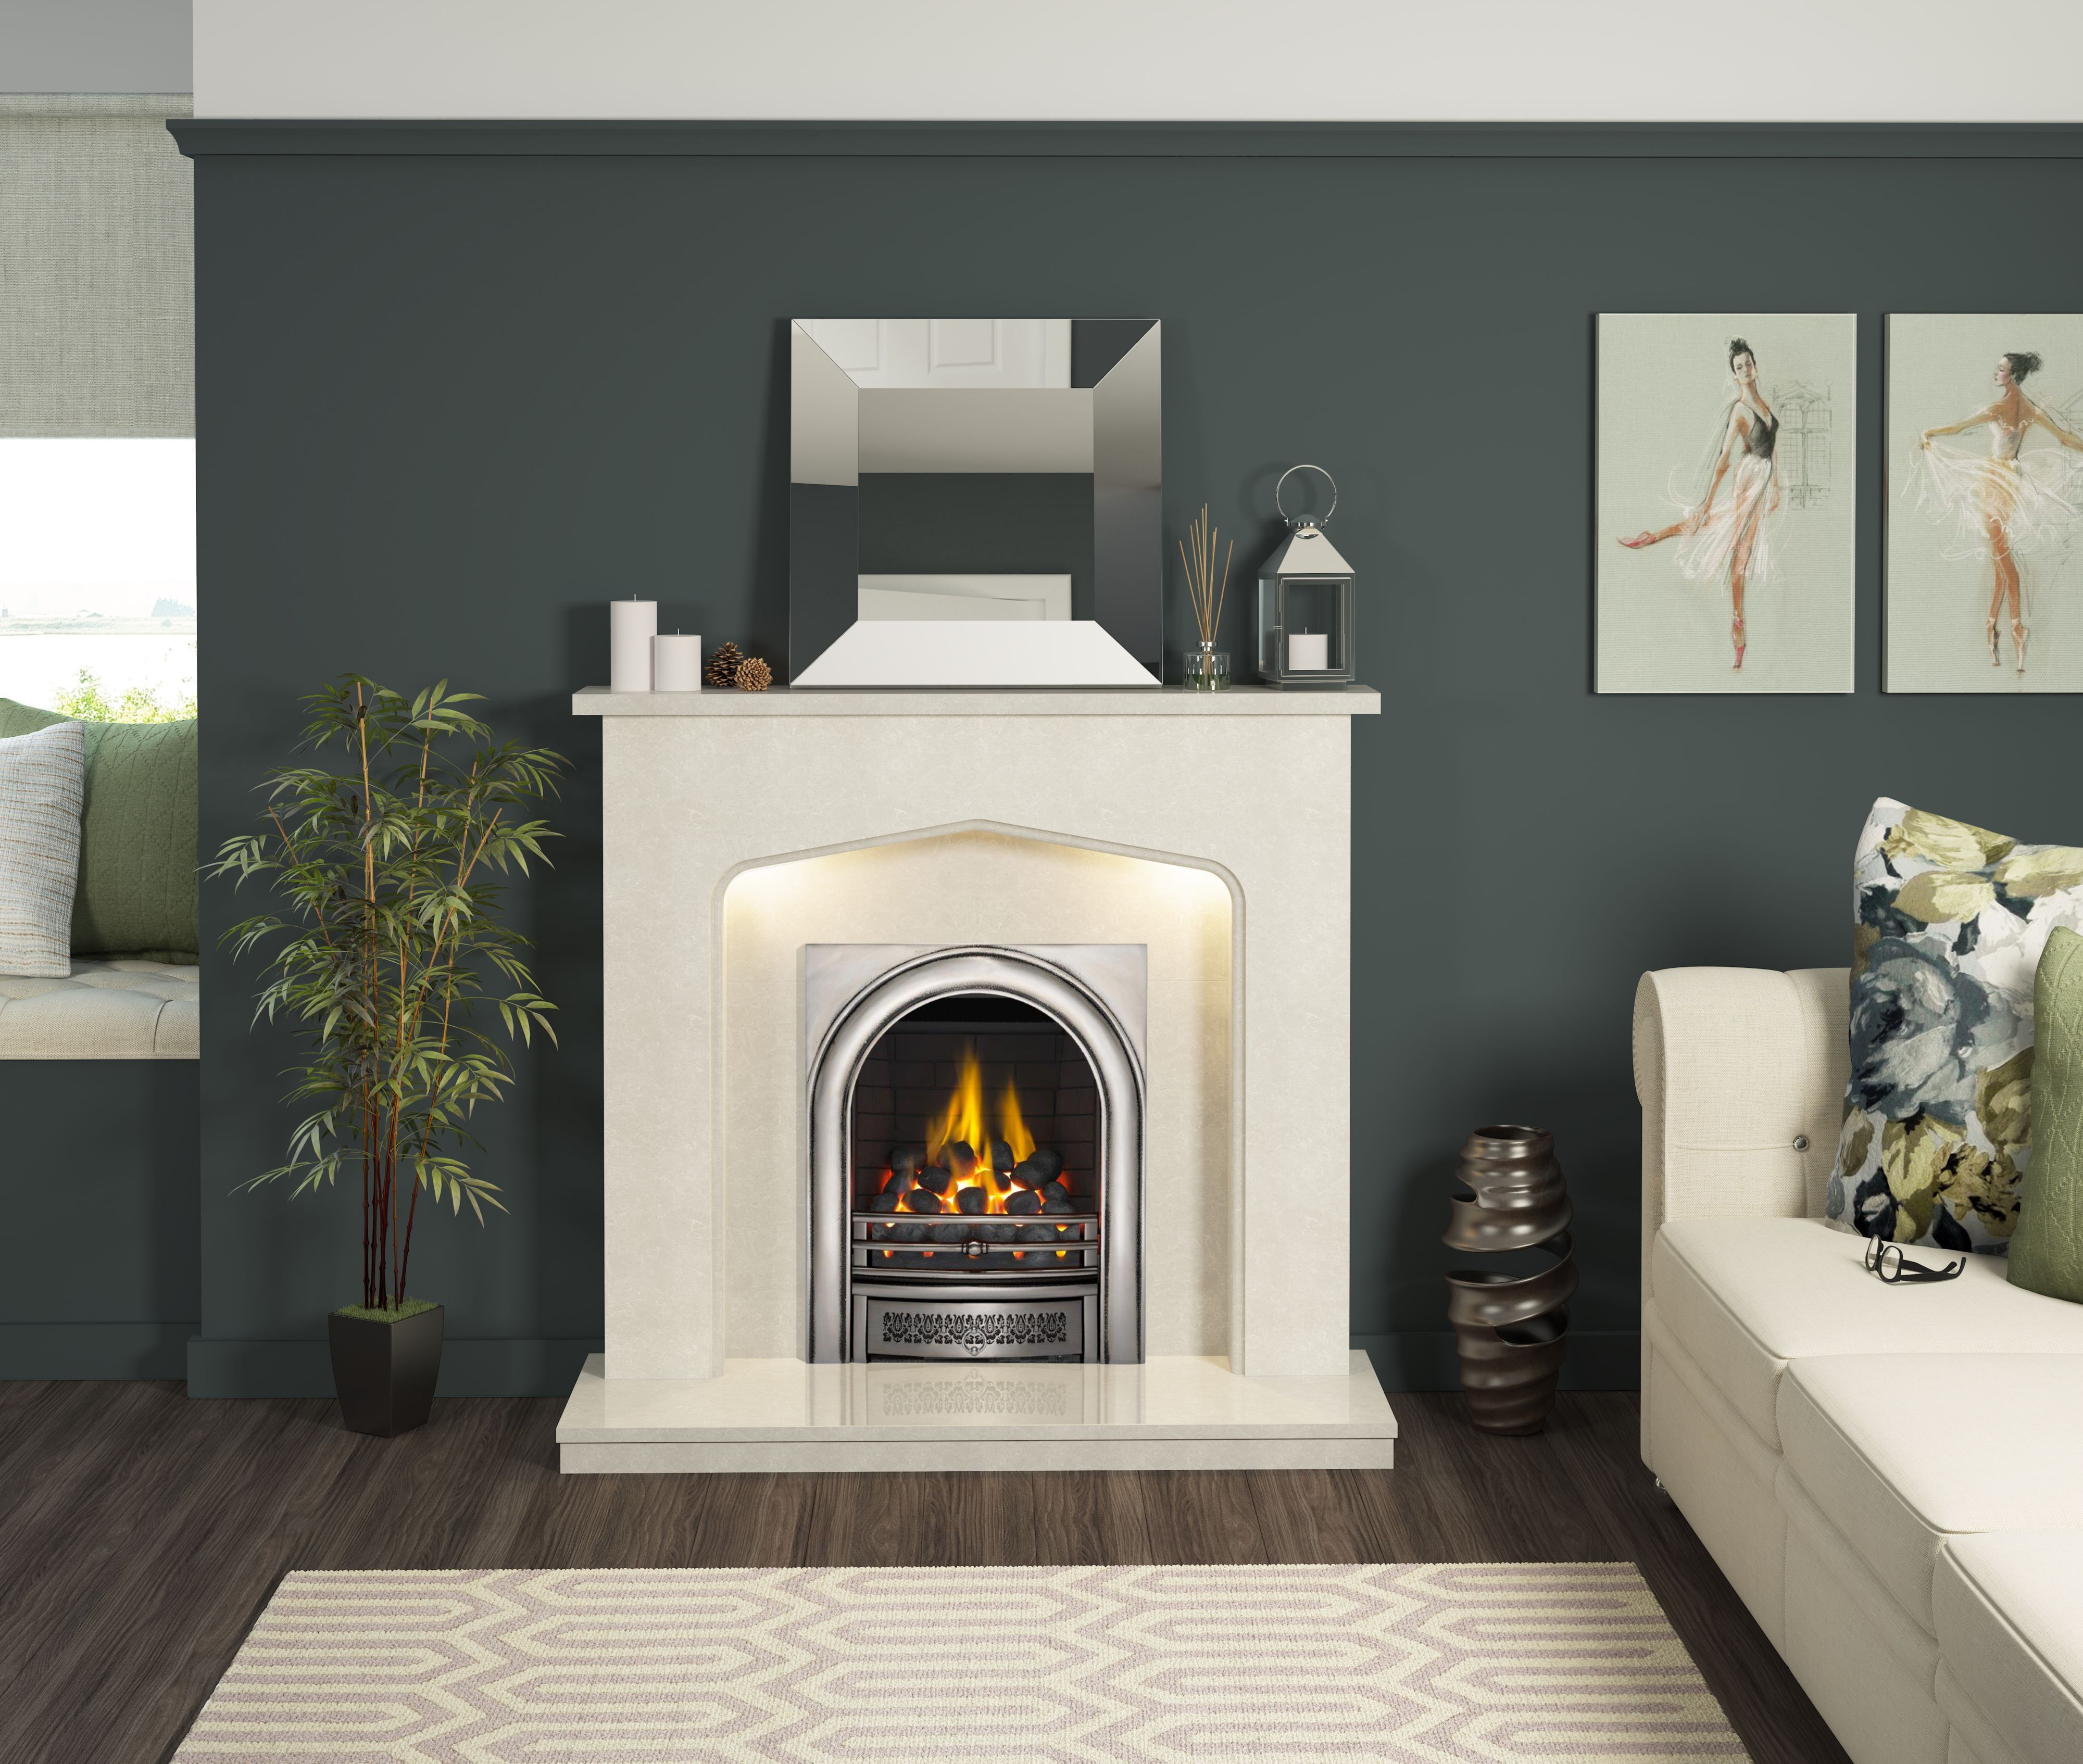 Pin By Chris On House Living Room Ideas In 2020 Fire Surround Home Living Room Diy Lighting